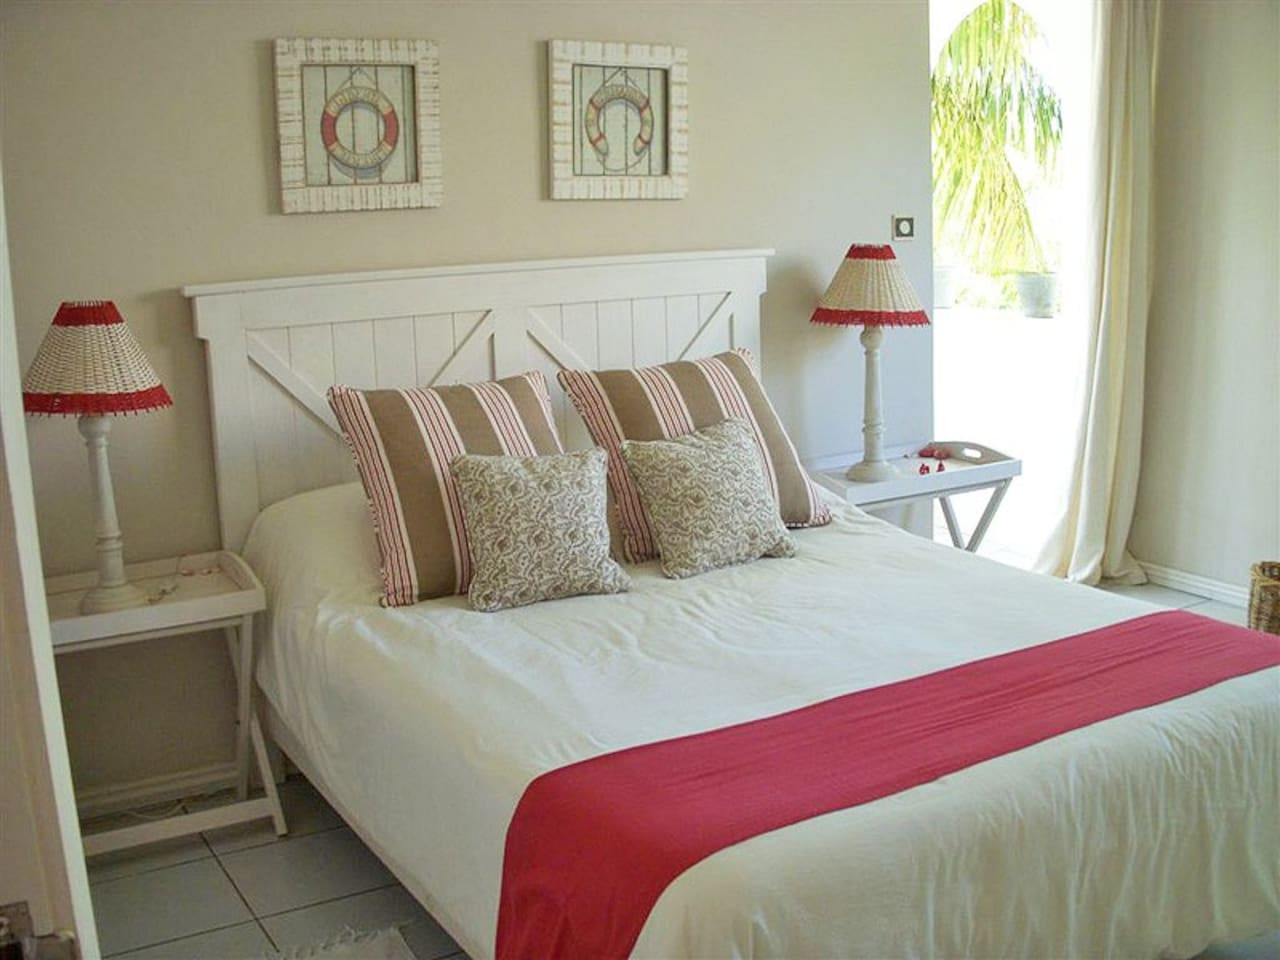 Double Bedroom with access to balcony, ample storage space, a desk and a small safe